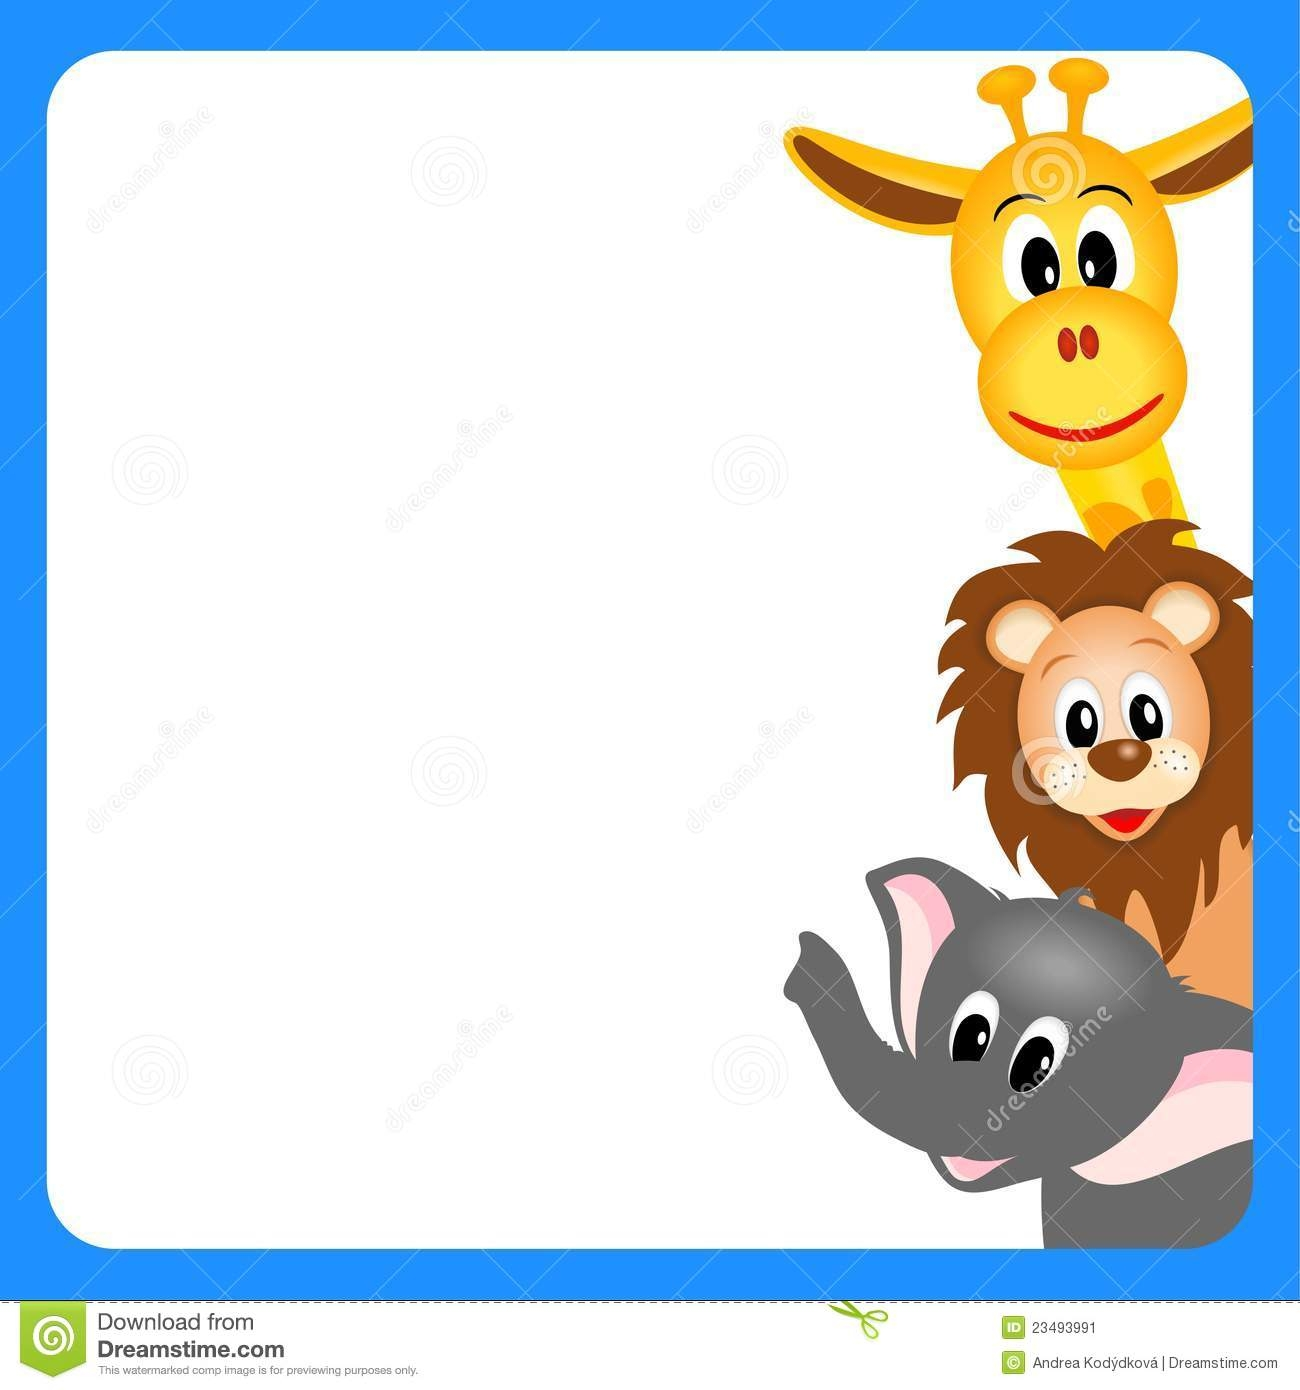 Wild game border clipart png library Wild animal clipart border - Clip Art Library png library